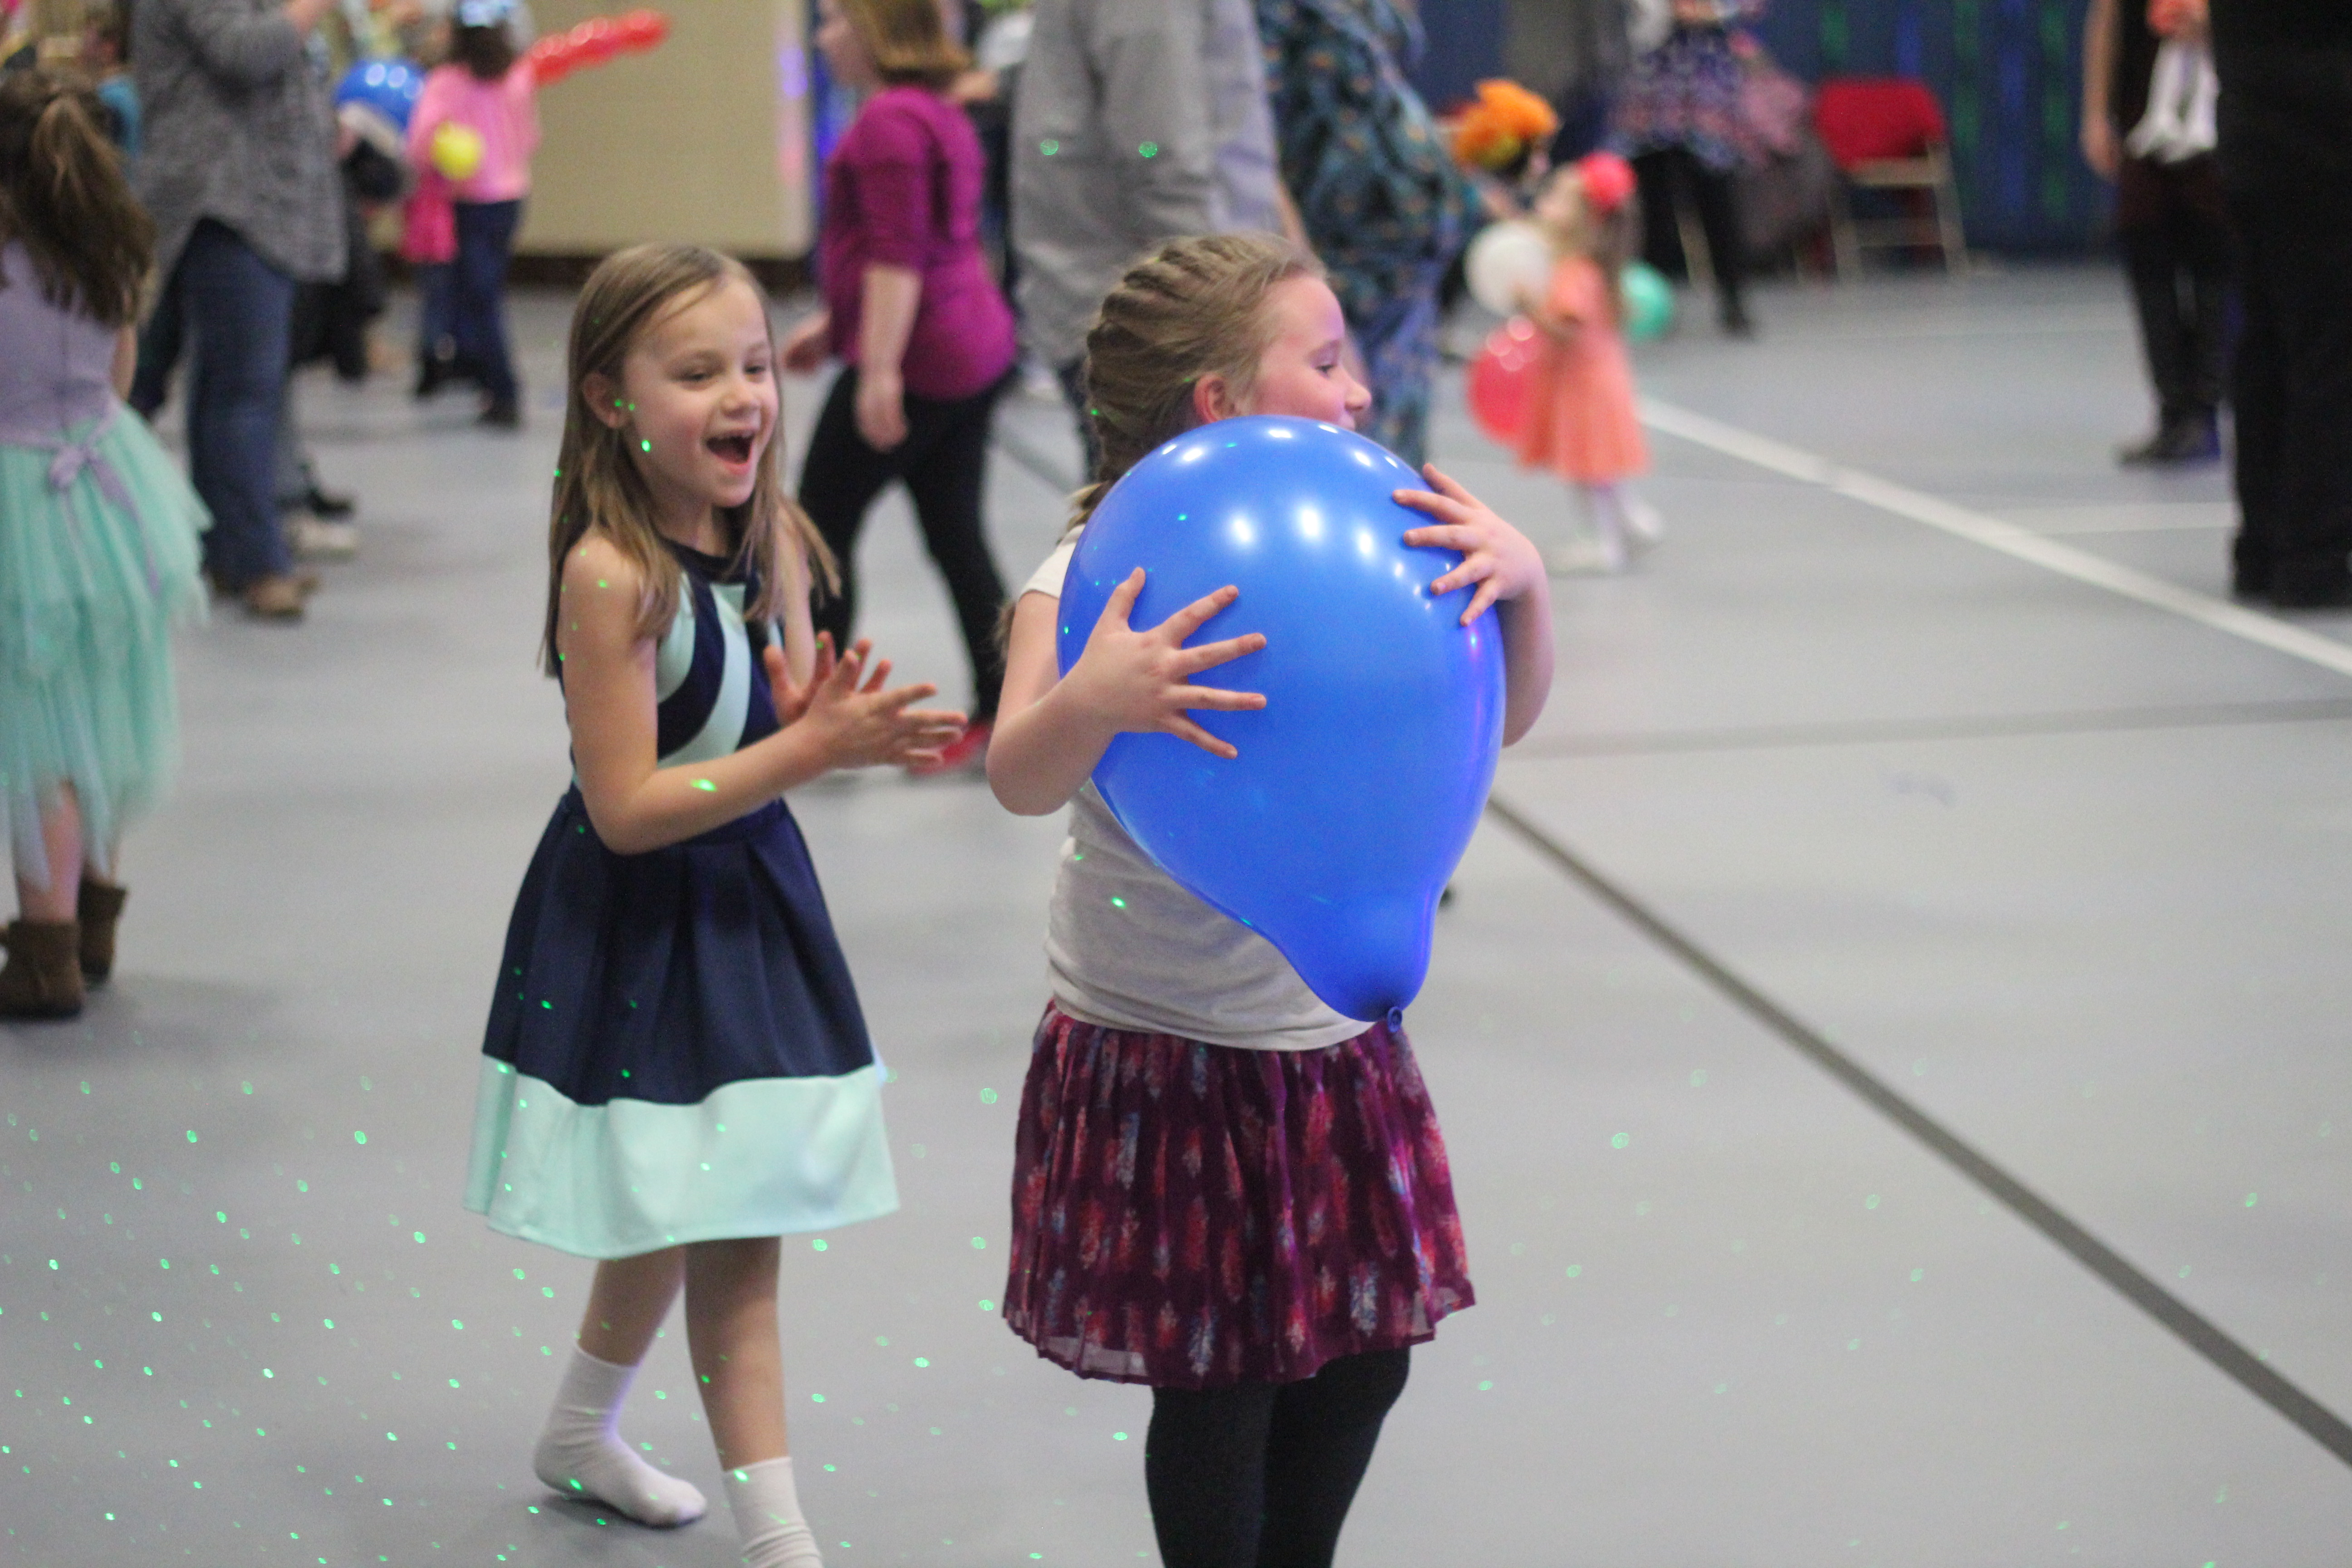 Two girls play with a balloon at the dance.